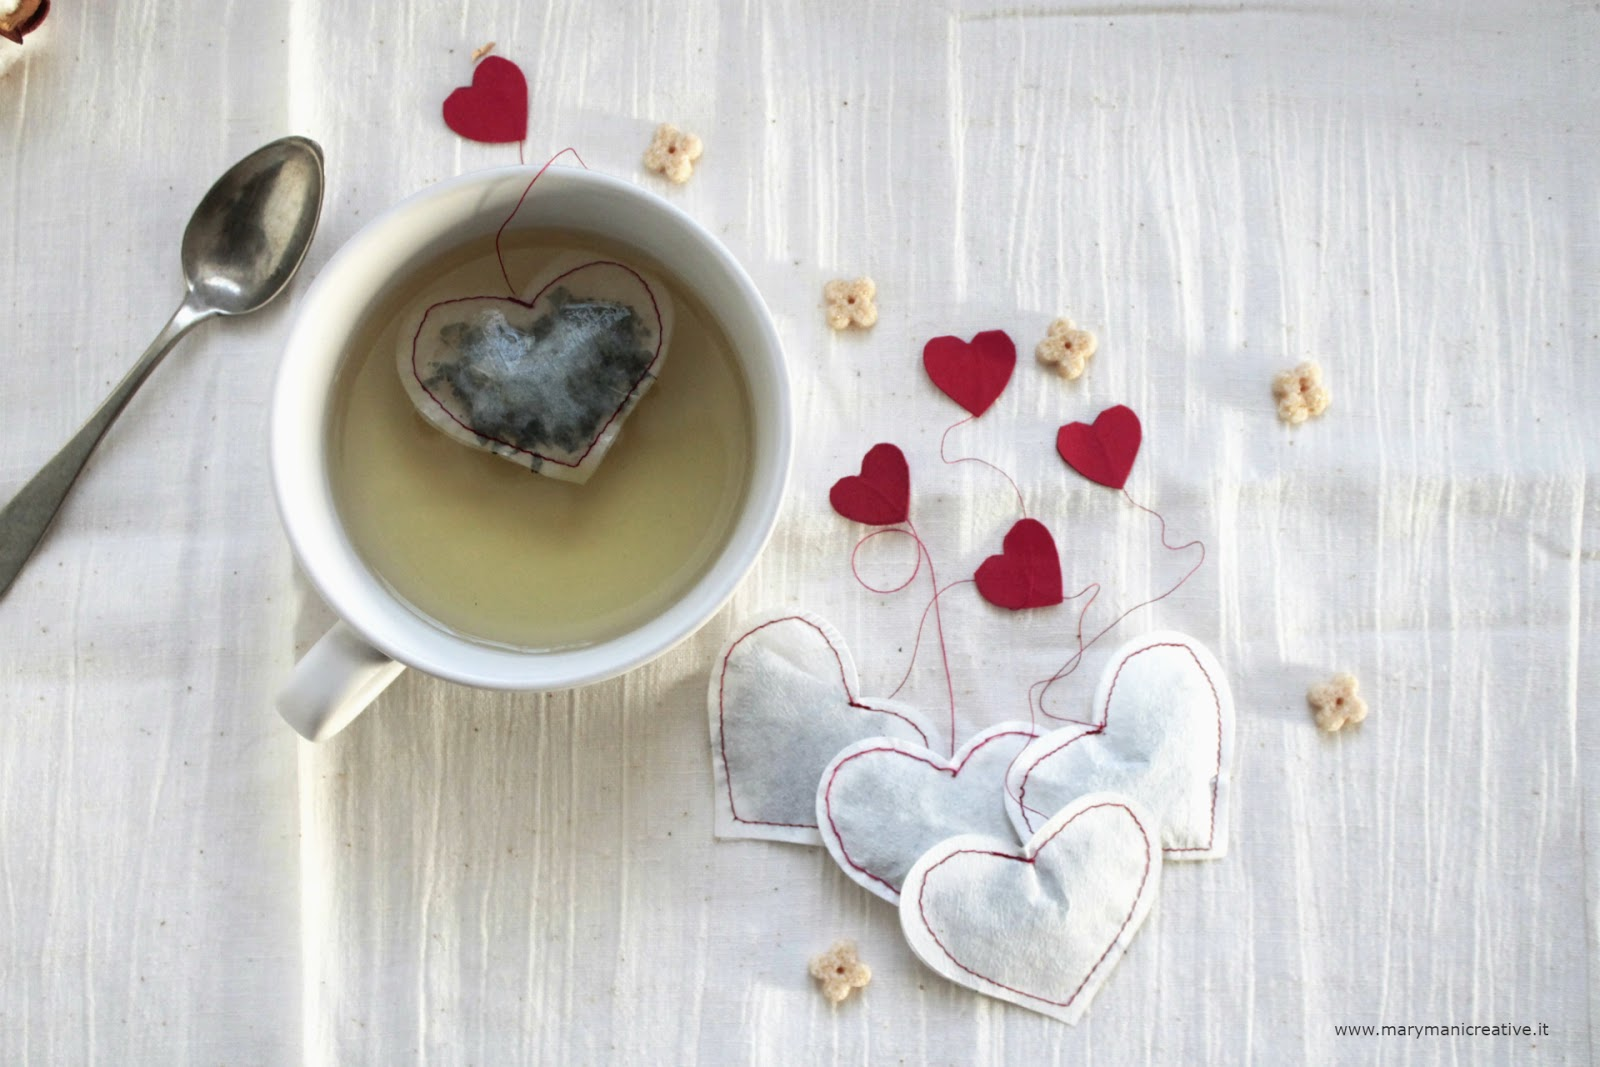 DIY-tea-bags-hearts-marymanicreative